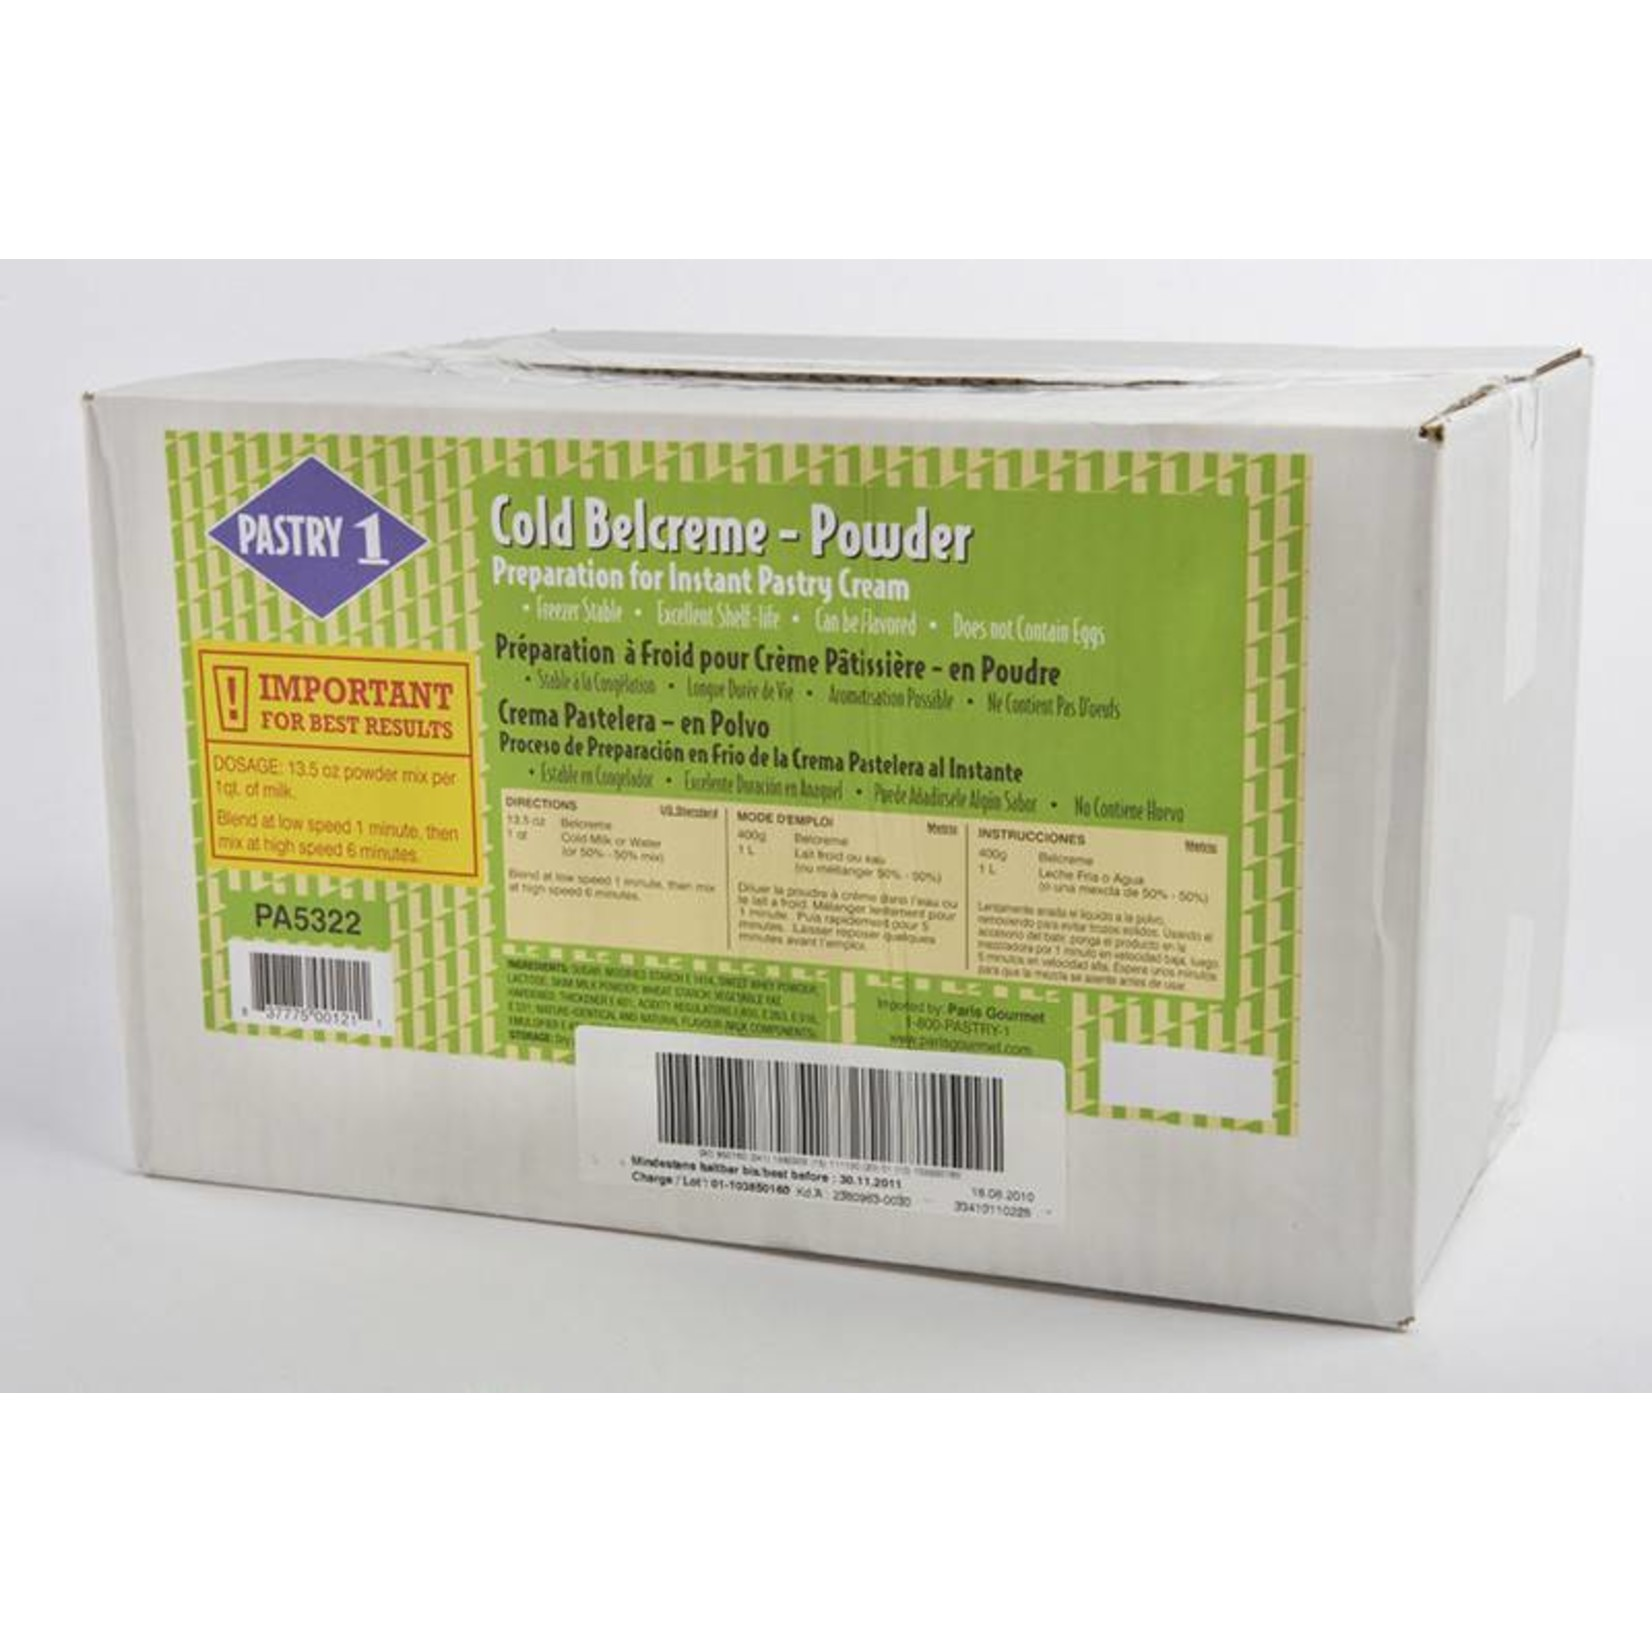 Pastry 1 Pastry 1 - Pastry cream mix, COLD process - 11 lb, PA5322